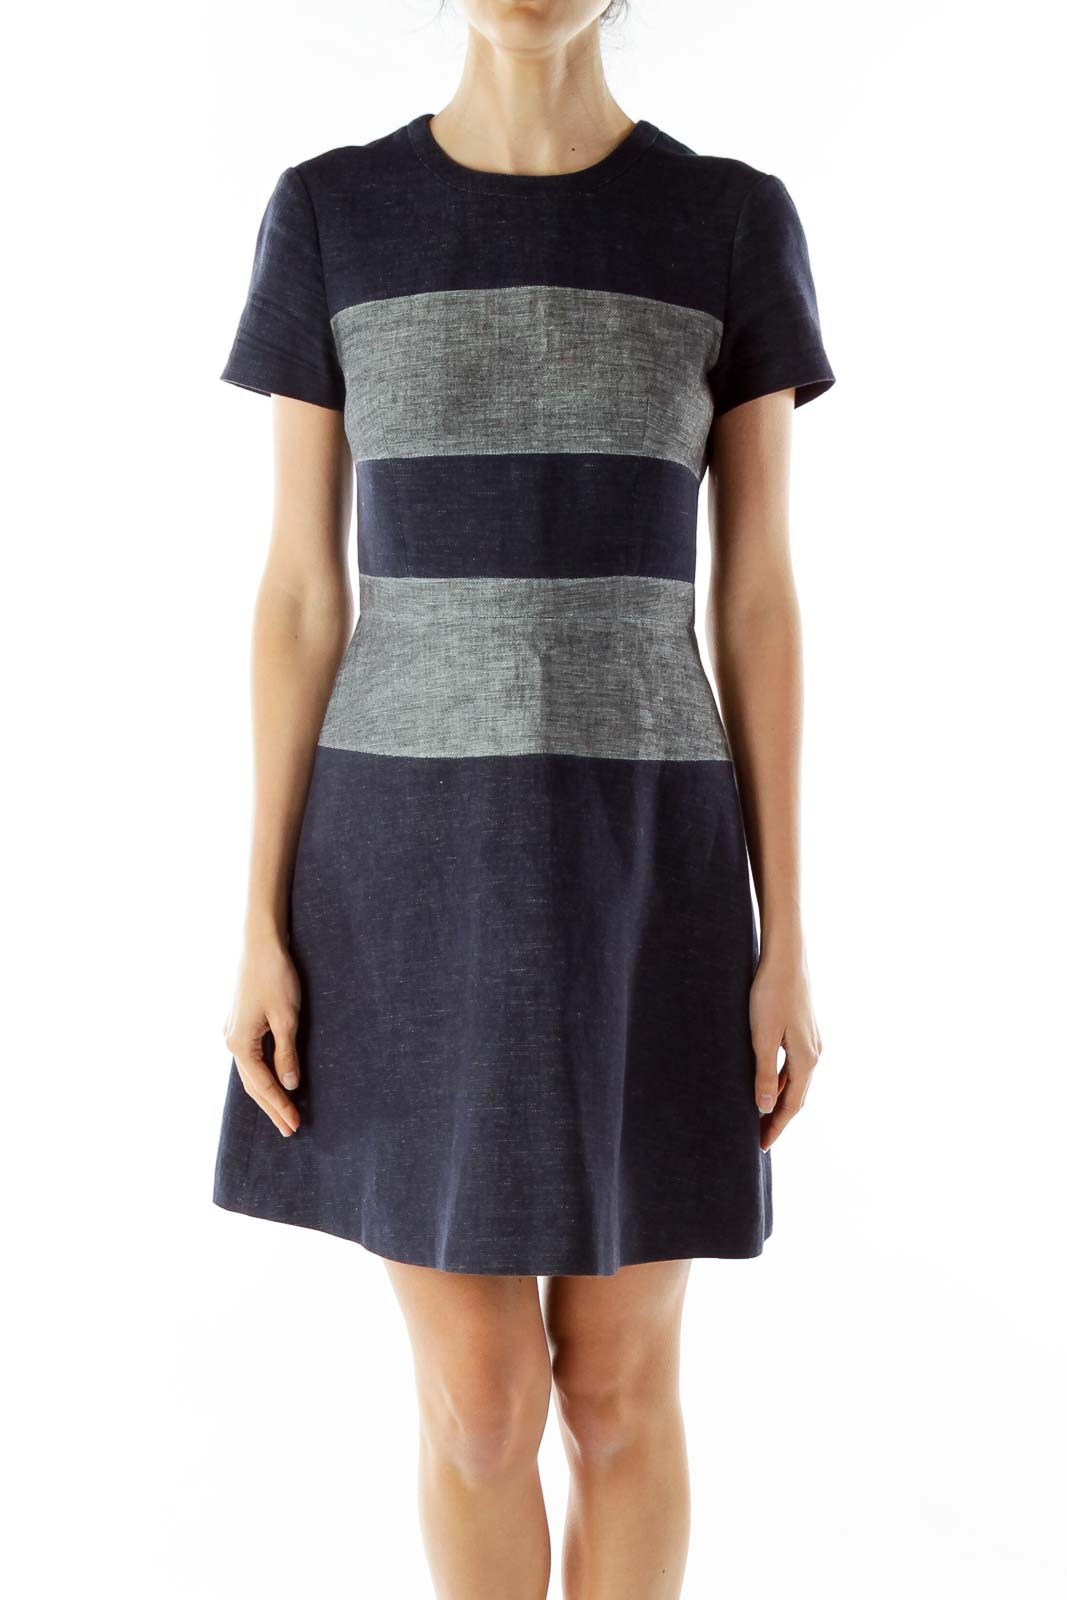 Blue Gray Striped Denim Dress